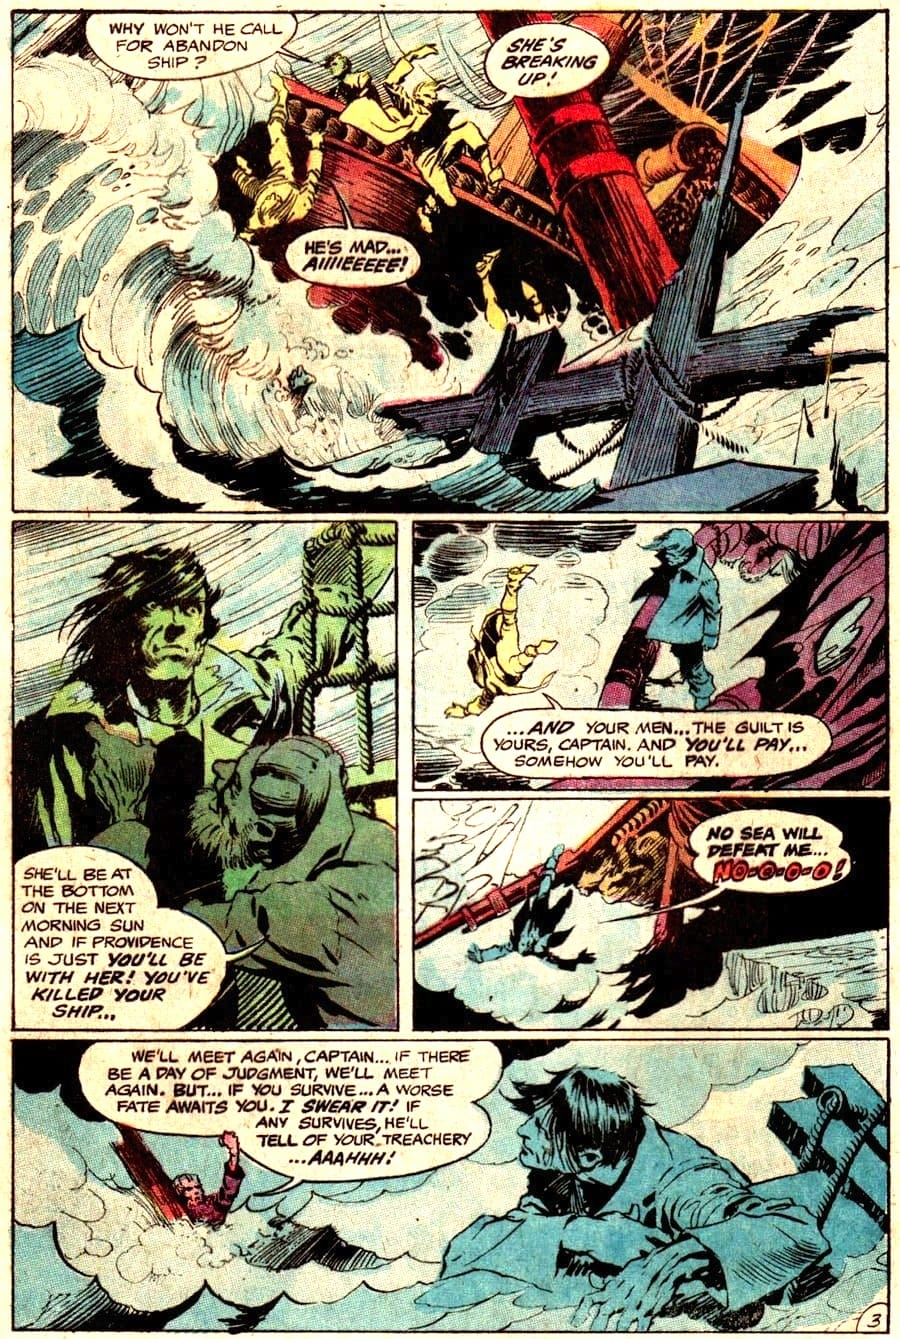 Bernie Wrightson dc horror silver age 1960s comic book page - Witching Hour #5